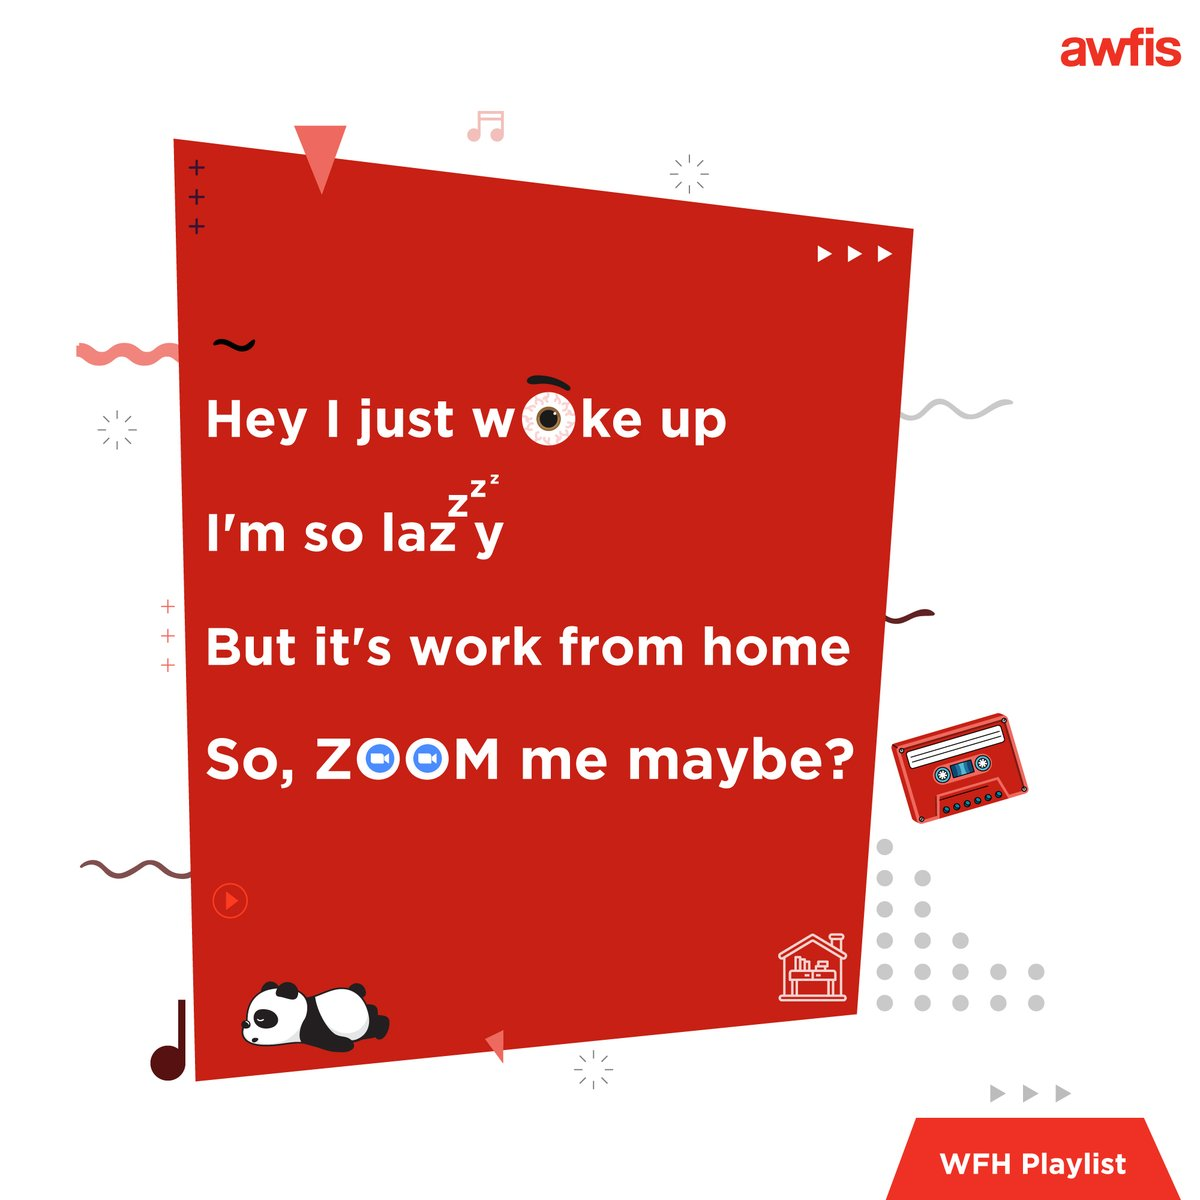 Our #WFH playlist will 𝗺𝗮𝘆𝗯𝗲 give 𝗲𝘃𝗲𝗿𝘆𝗯𝗼𝗱𝘆 a 𝘁𝗵𝗿𝗶𝗹𝗹 🎶 Guess the songs and maybe sing along?   #WfhPlaylist #WorkFromHome #FunnyLyrics https://t.co/v5CTQlLV3T